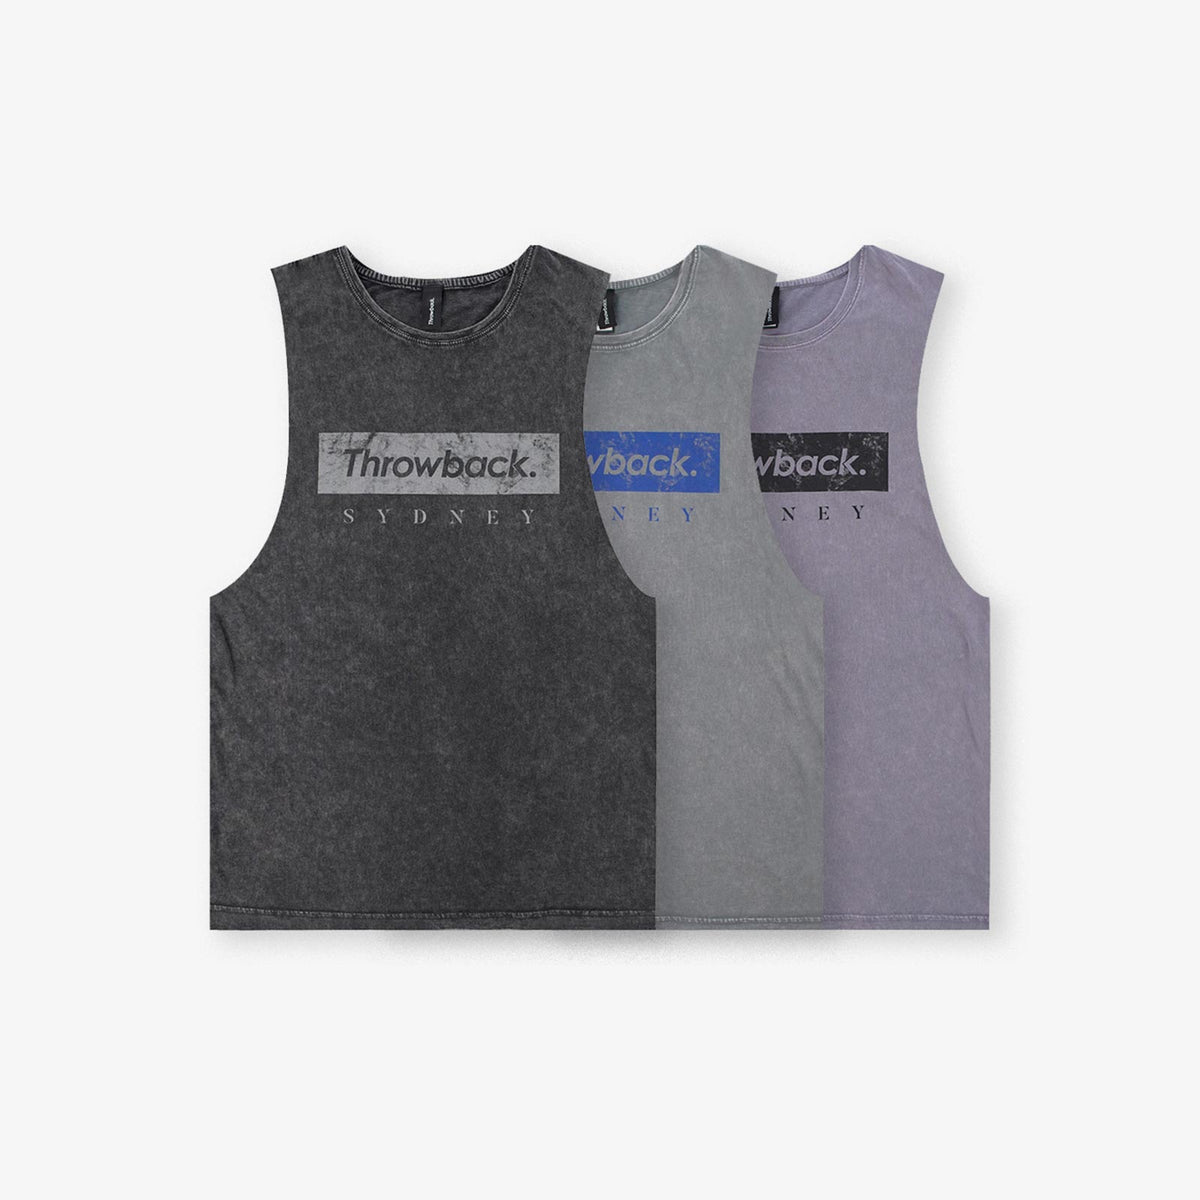 Throwback Sydney Vintage Pre-Game Tank - Black Stone